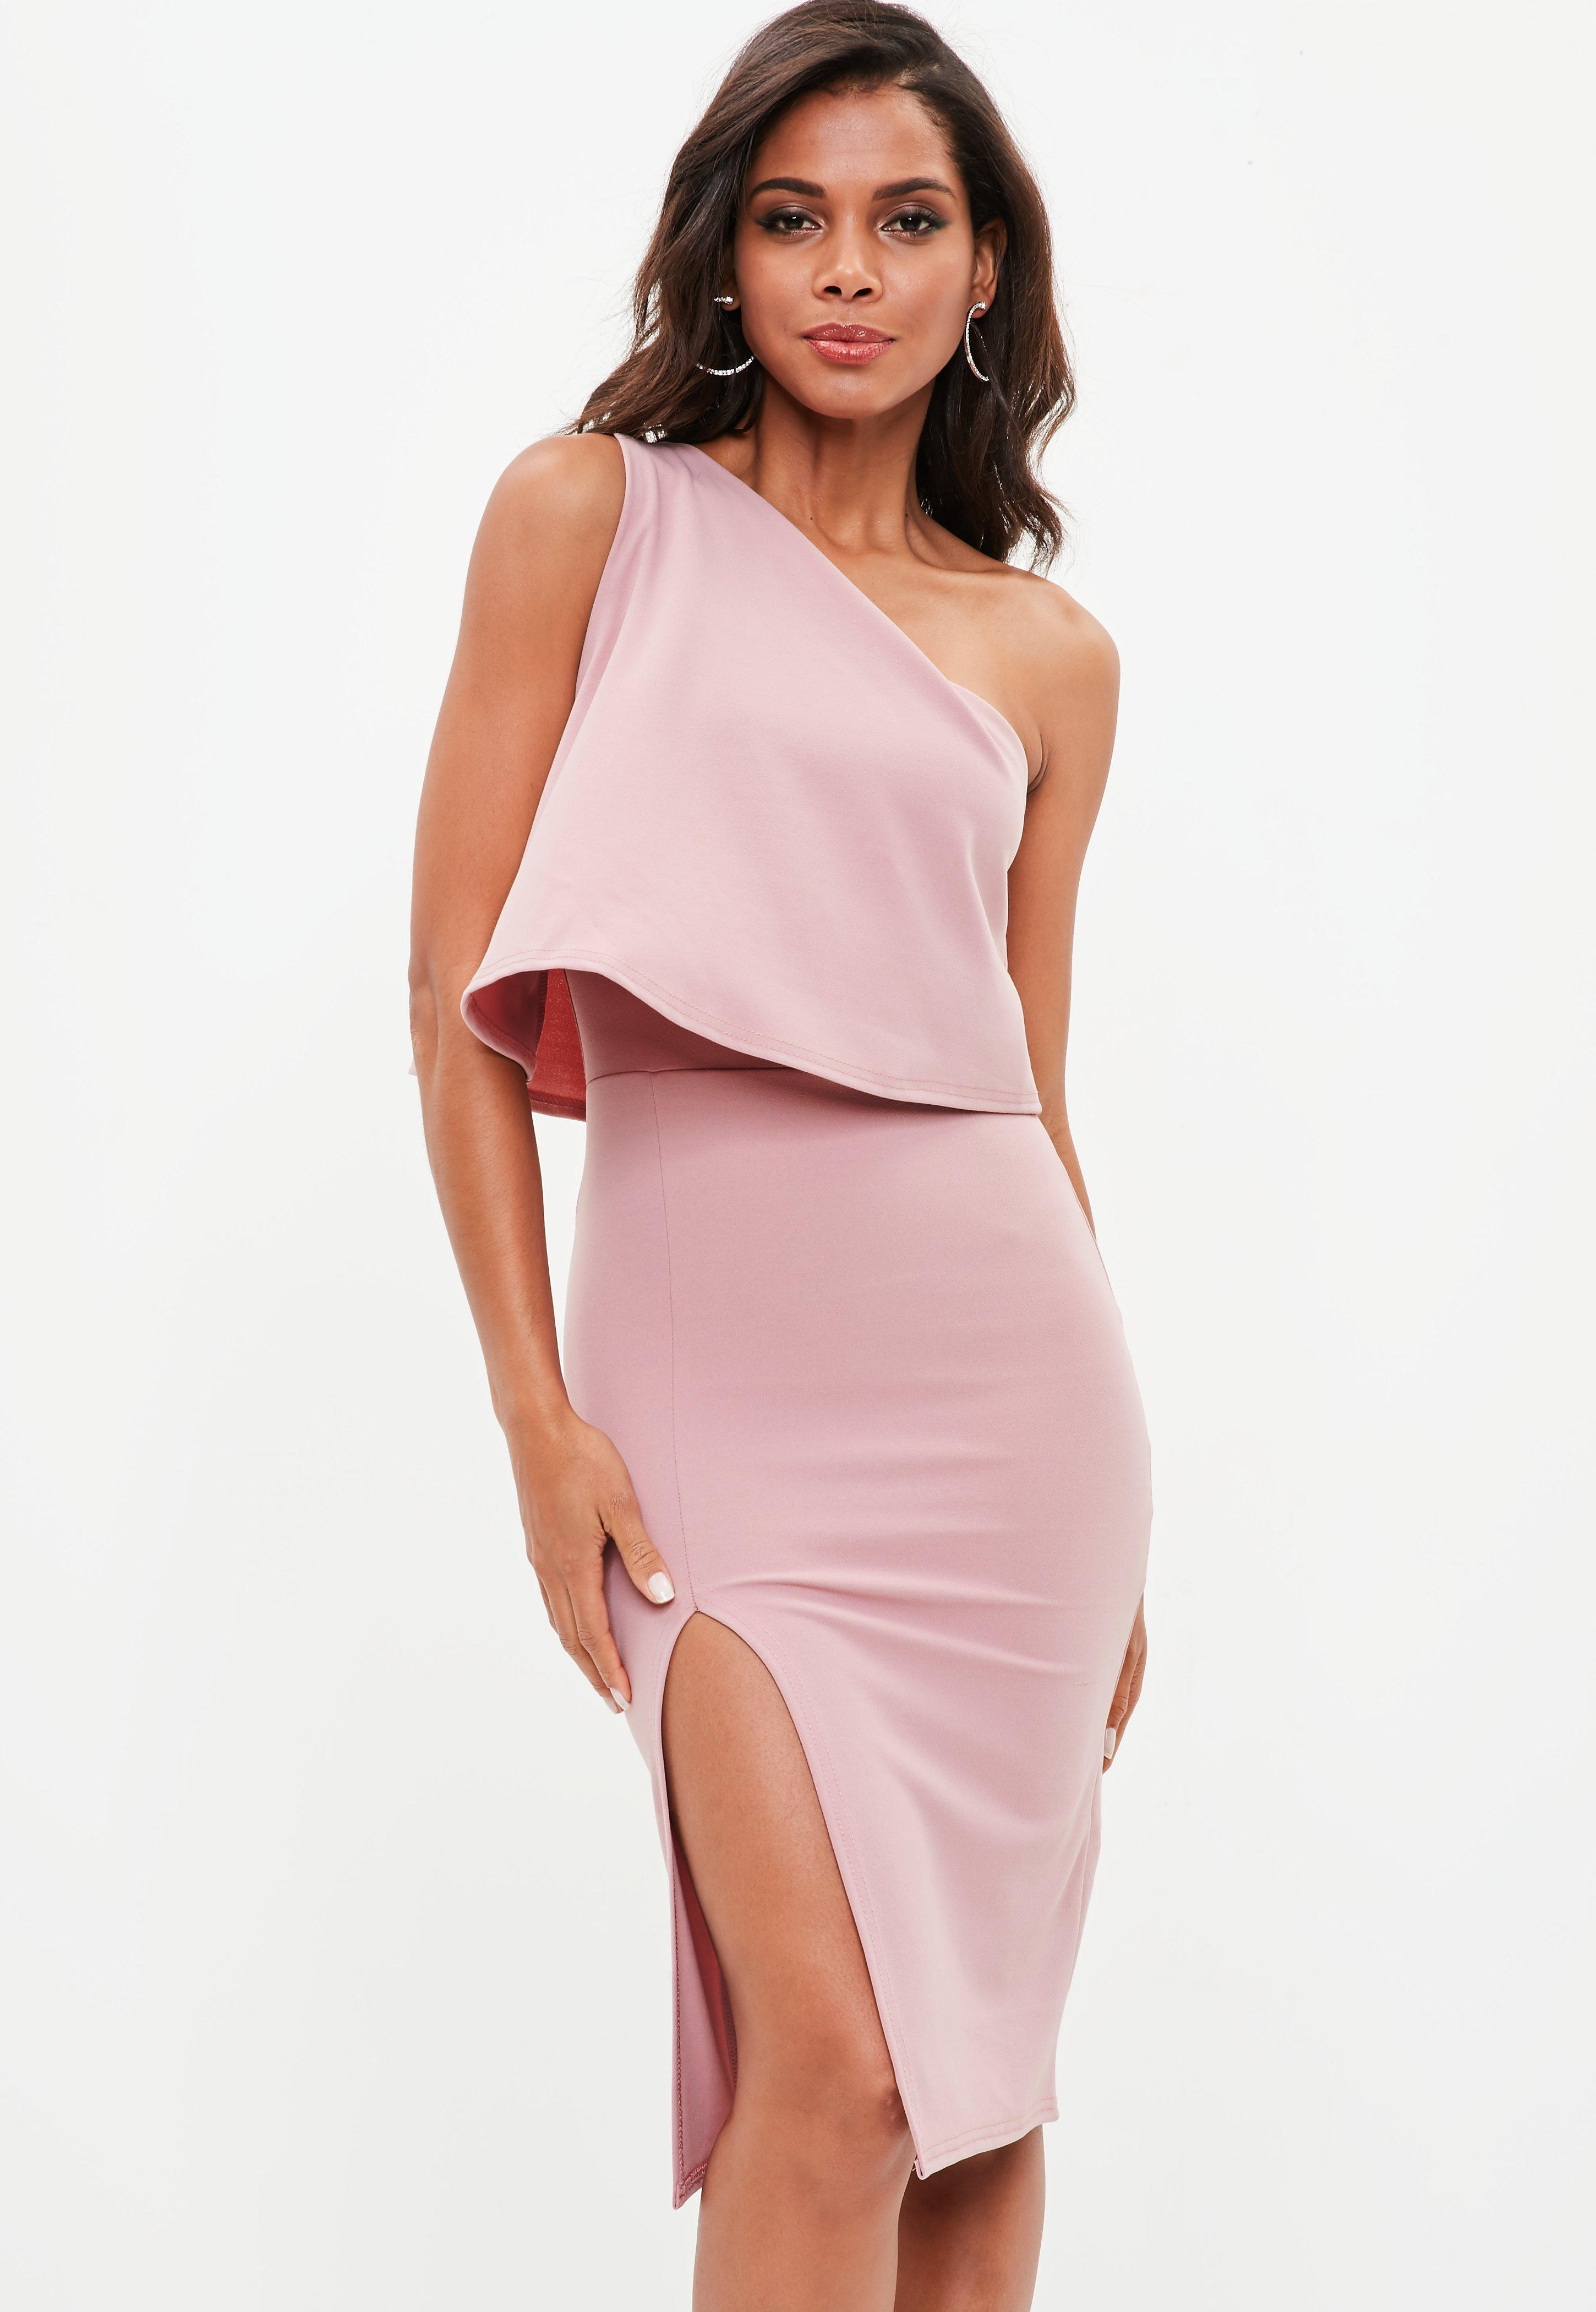 Lyst missguided rose pink one shoulder crepe overlay midi dress in pink Pink fashion and style pink dress